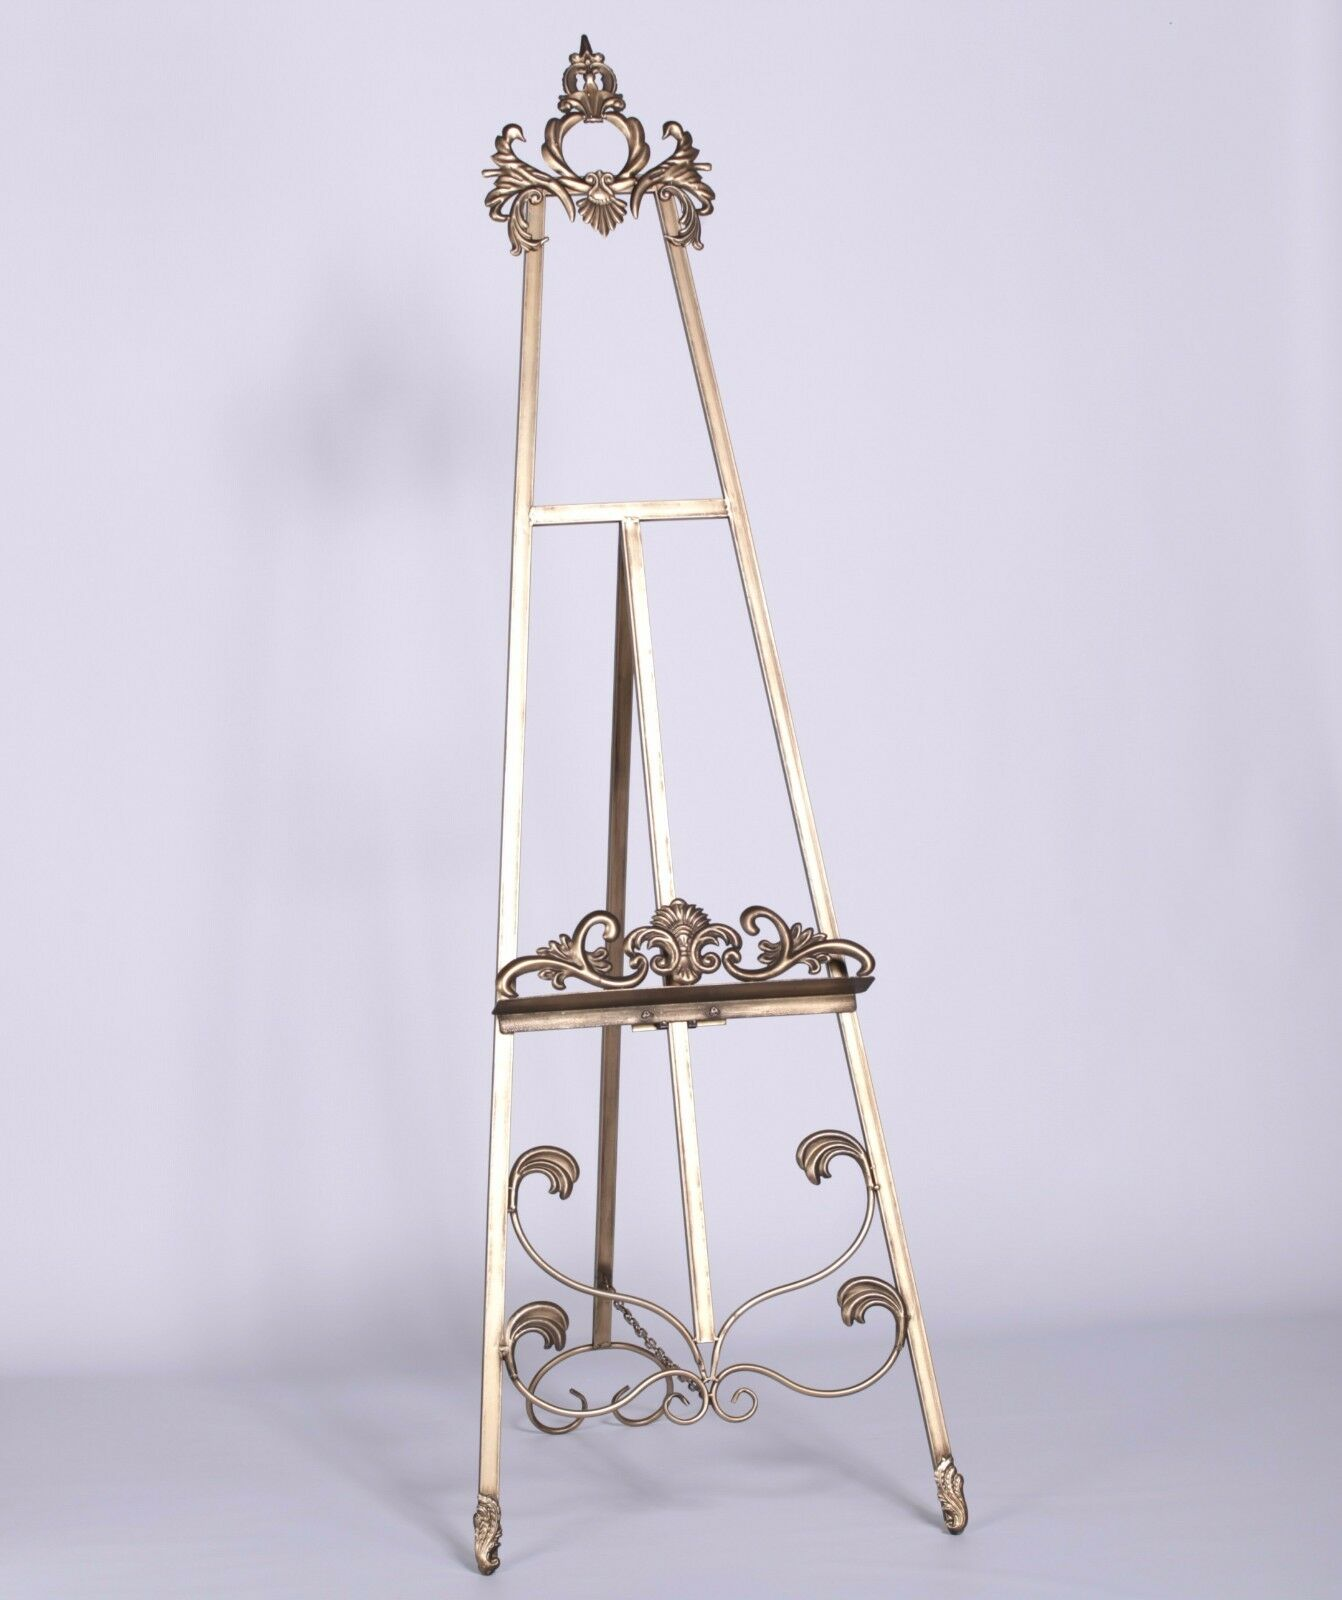 Antique Gold Easel - 2 Available